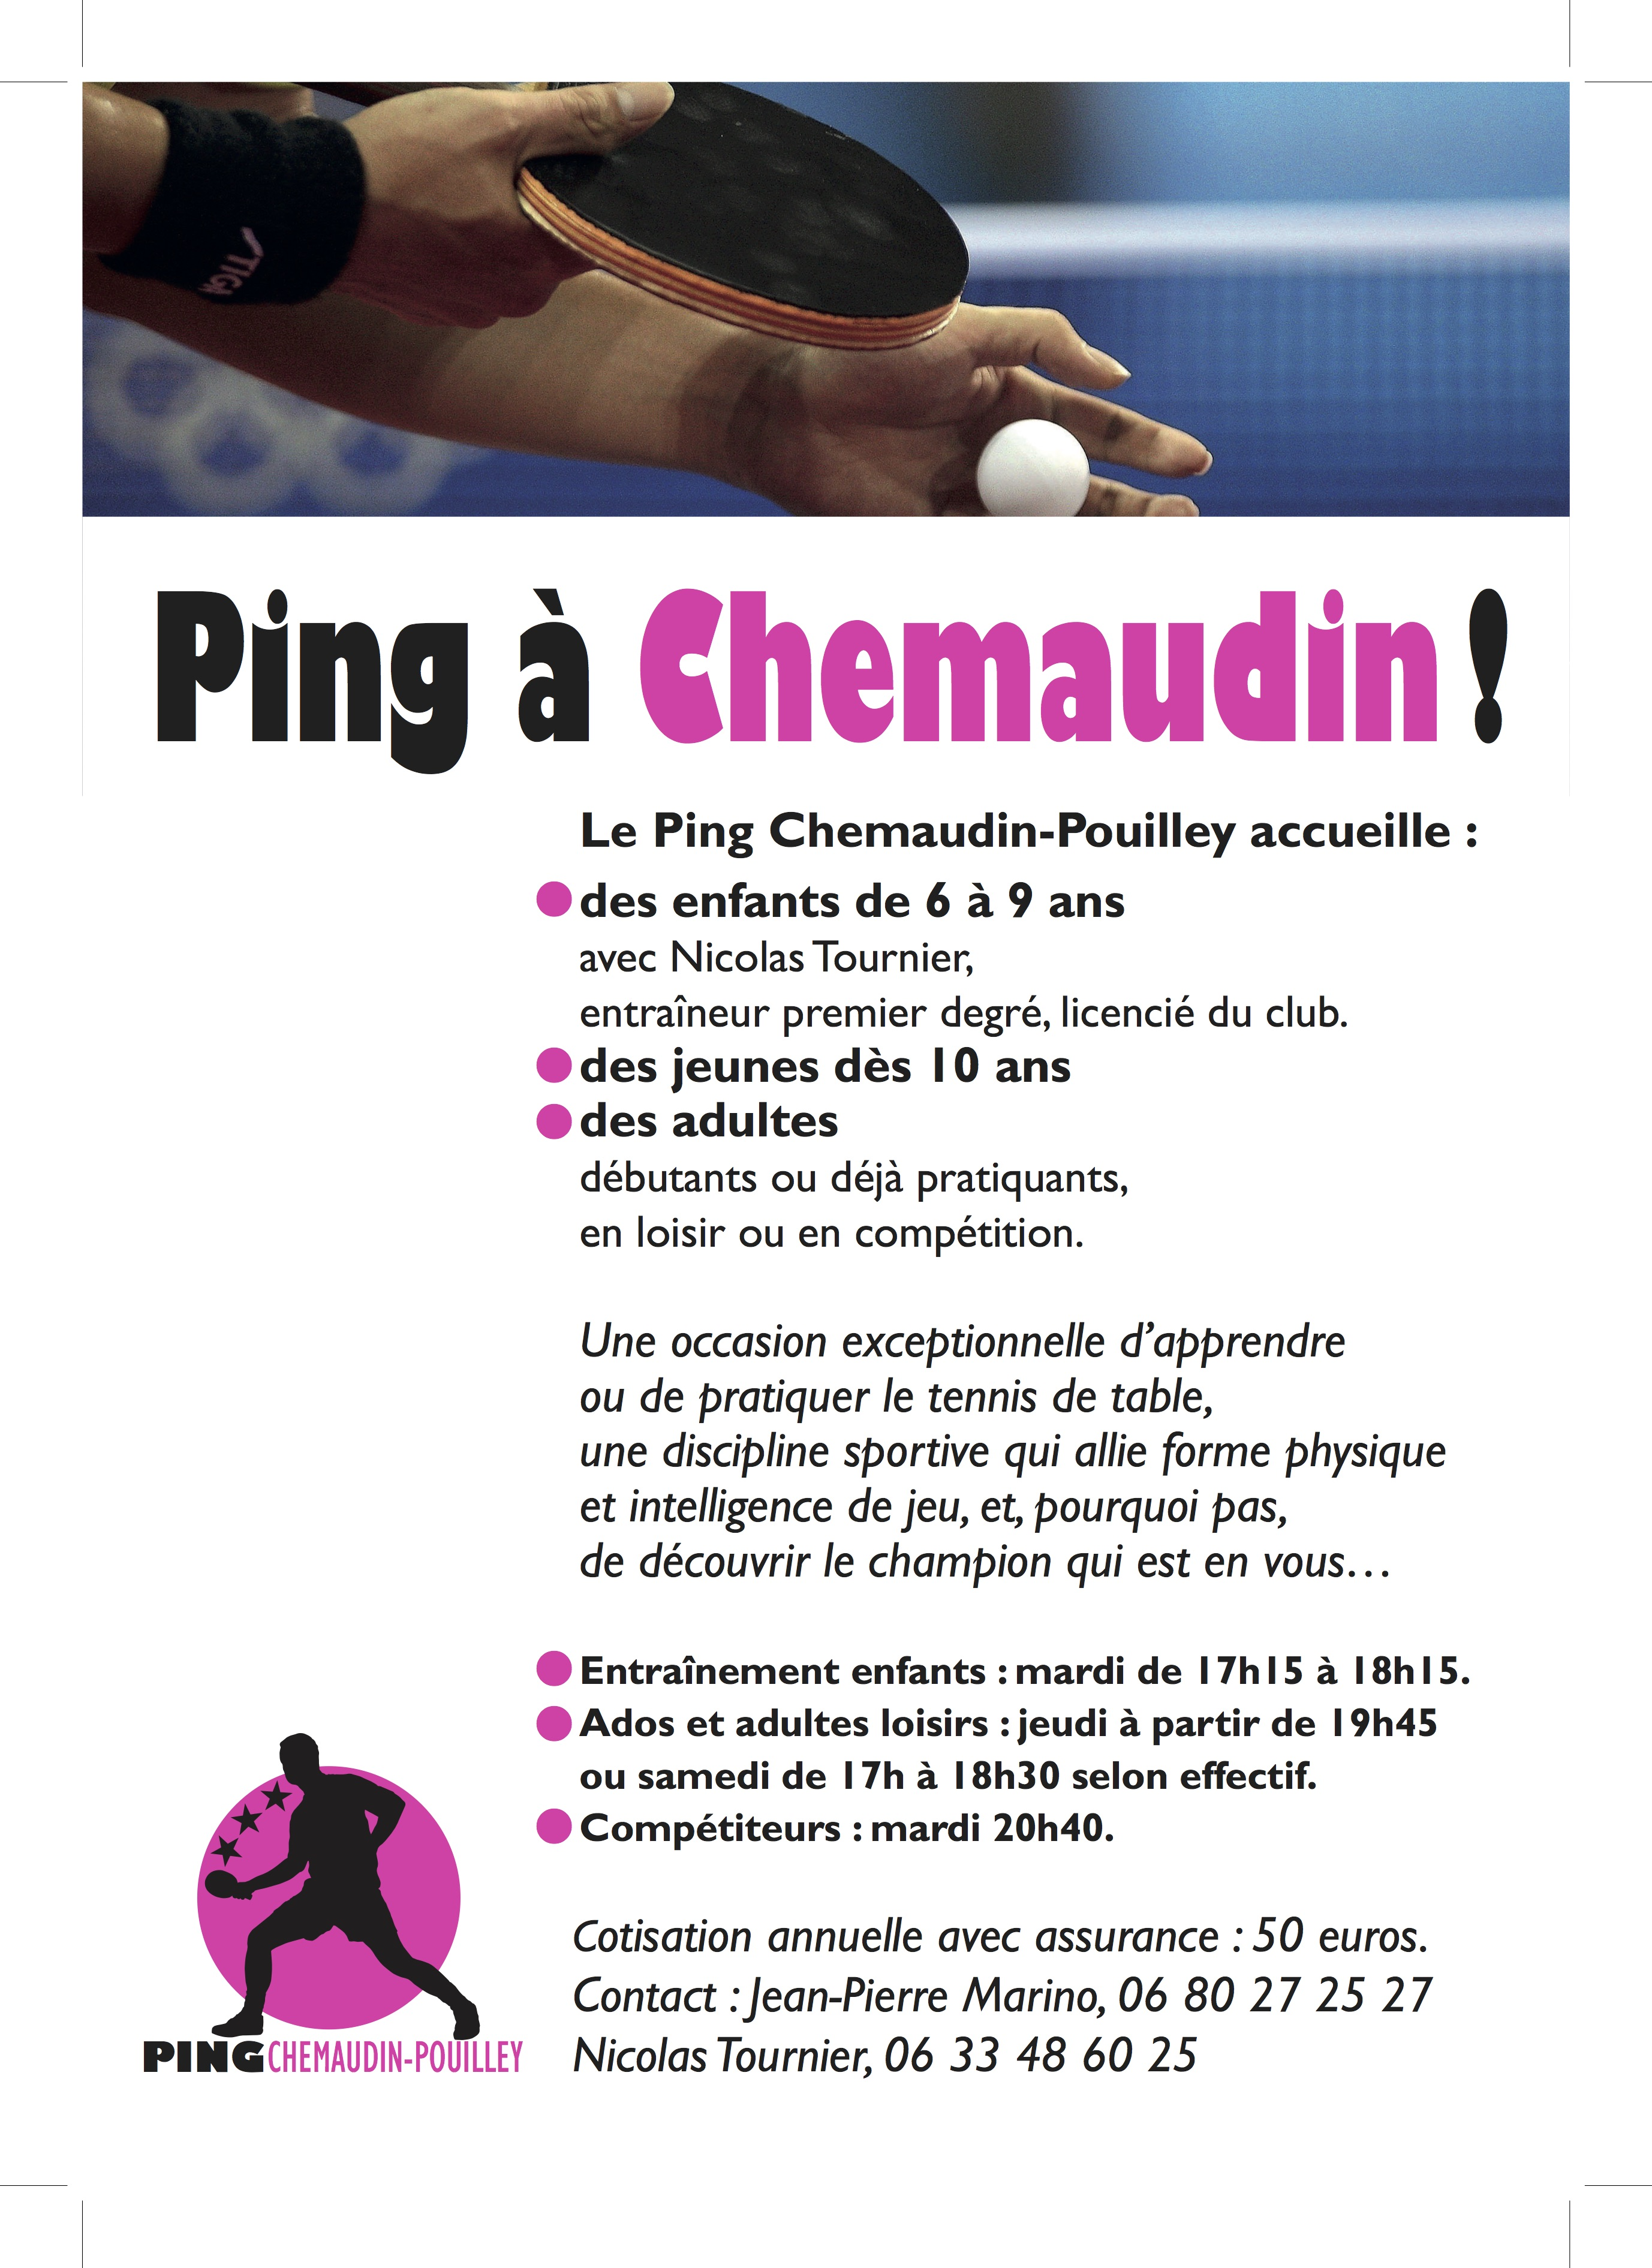 ping-pong-chemaudin